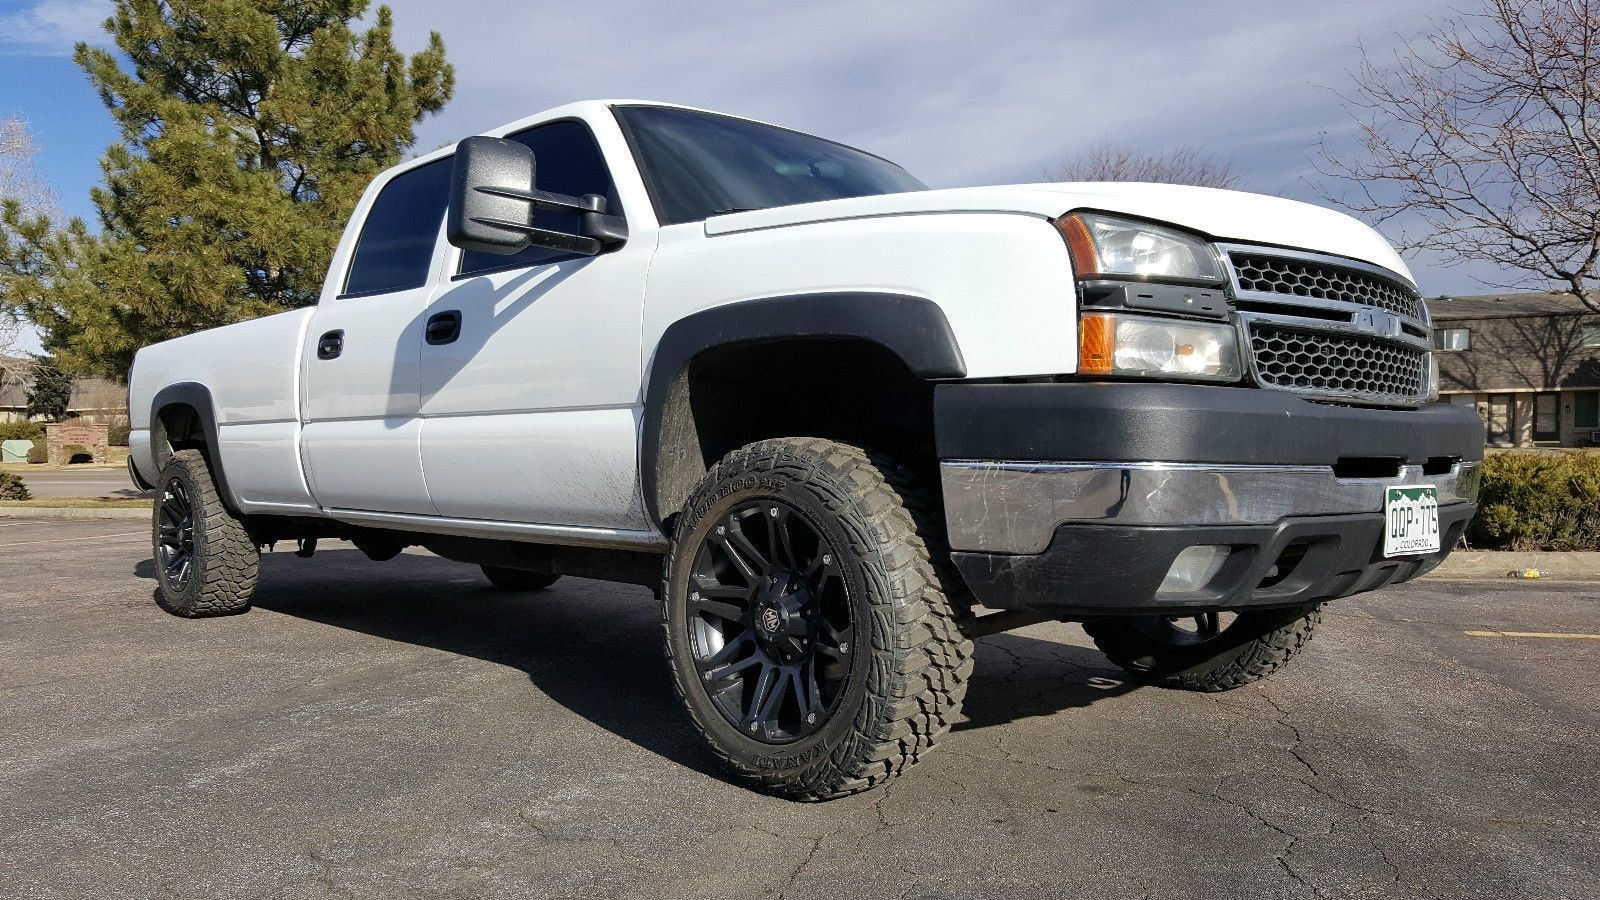 Avalanche 2002 chevy avalanche lift kit : 2006 Chevy Silverado 2500hd 6.0 Auto Crew Cab Longbed 4×4 Lift Kit ...